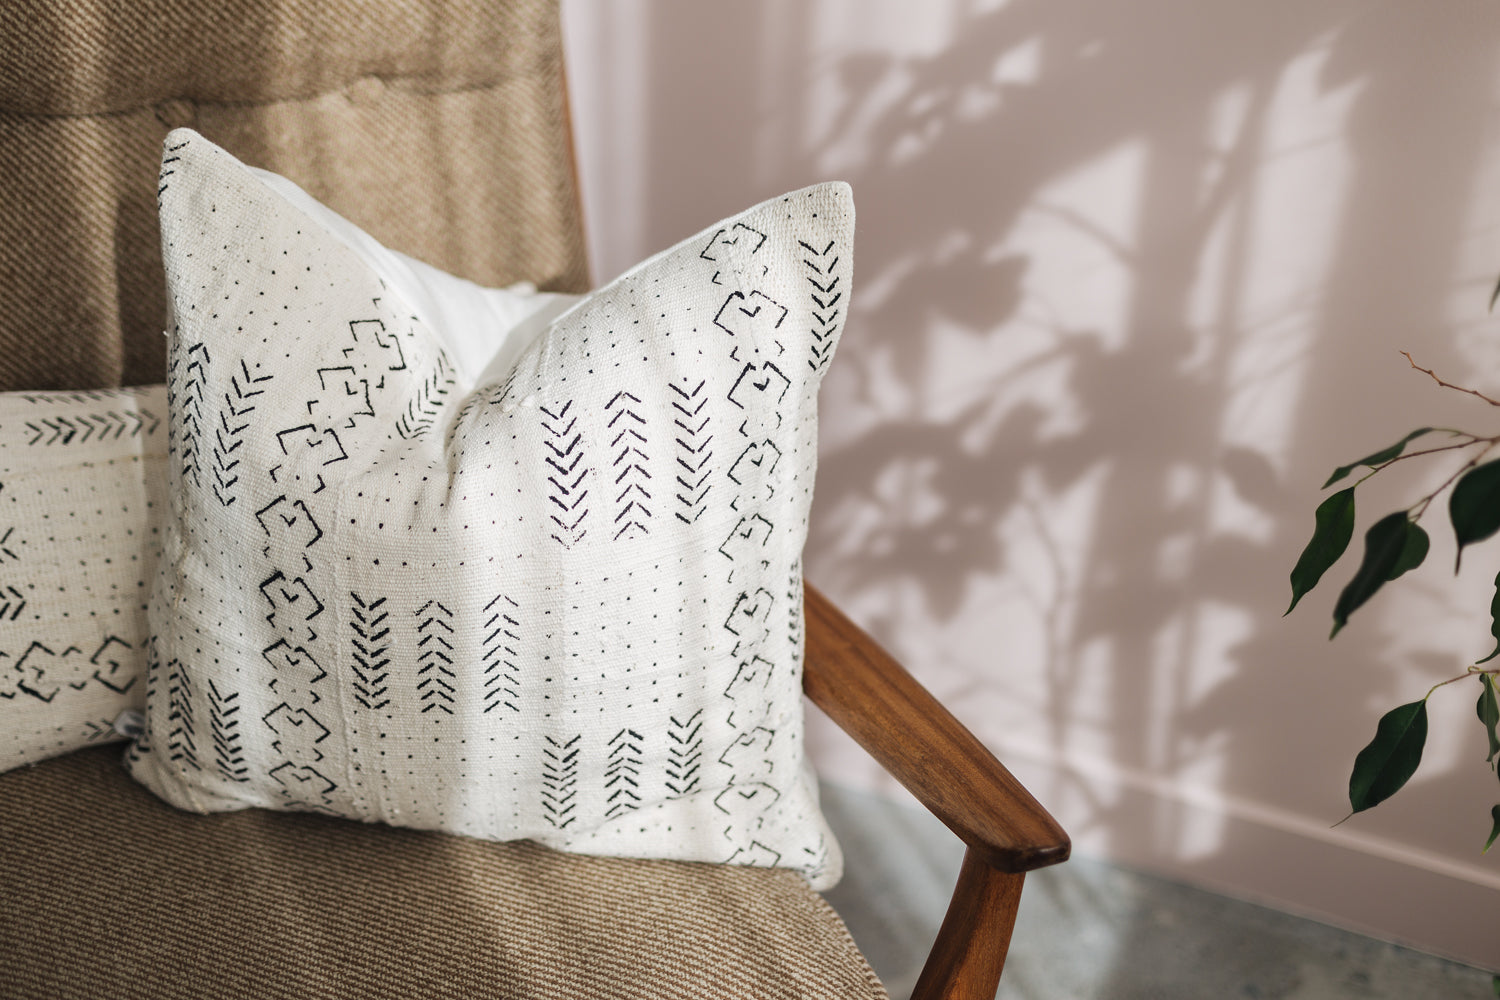 Ethical white mudcloth cushion made by former refugees using traditionally made artisan-crafted fabric. Contemporary global style with soul